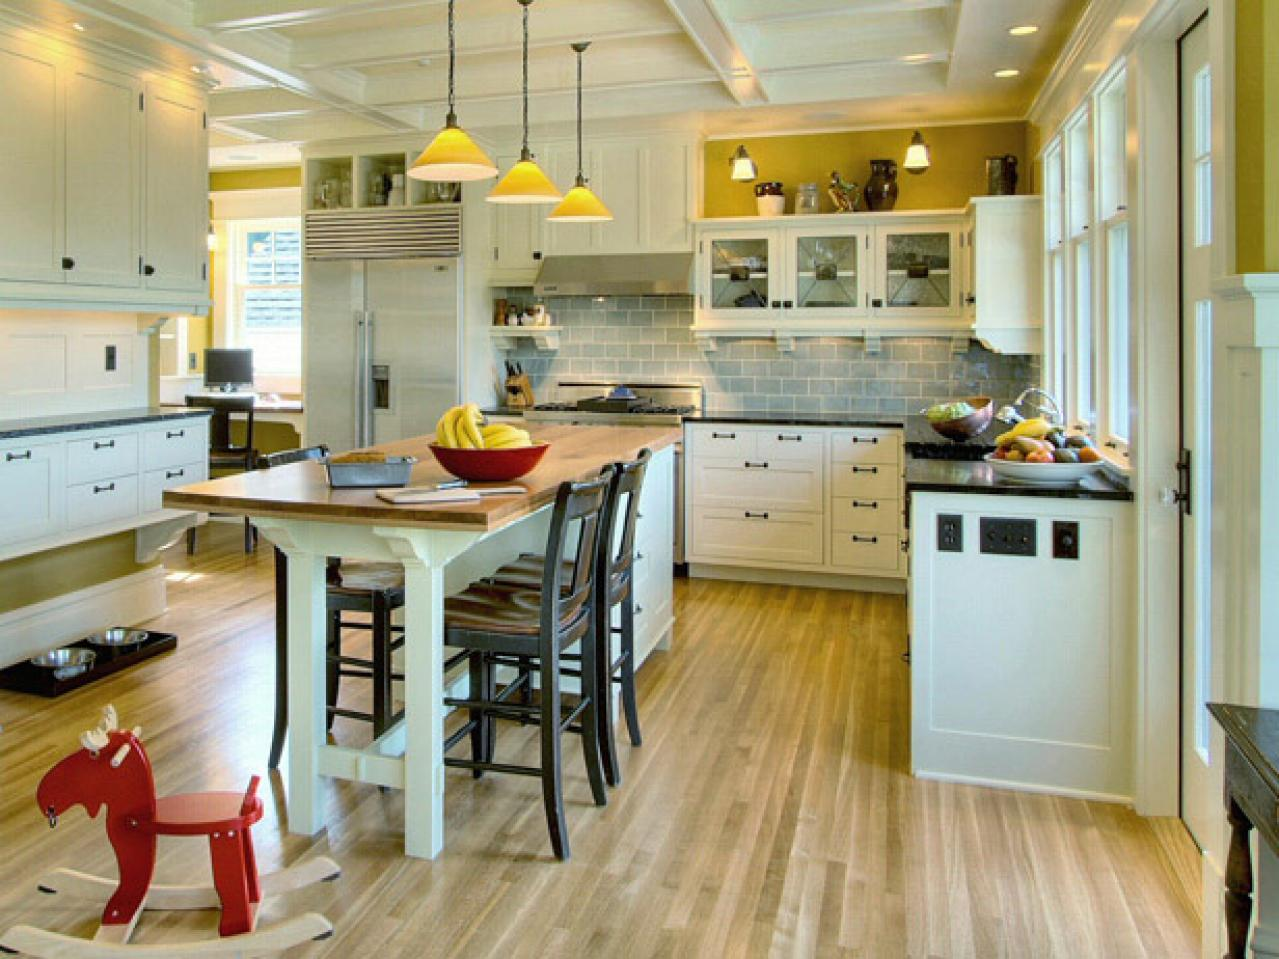 10 kitchen islands kitchen ideas design with cabinets Kitchen breakfast table designs